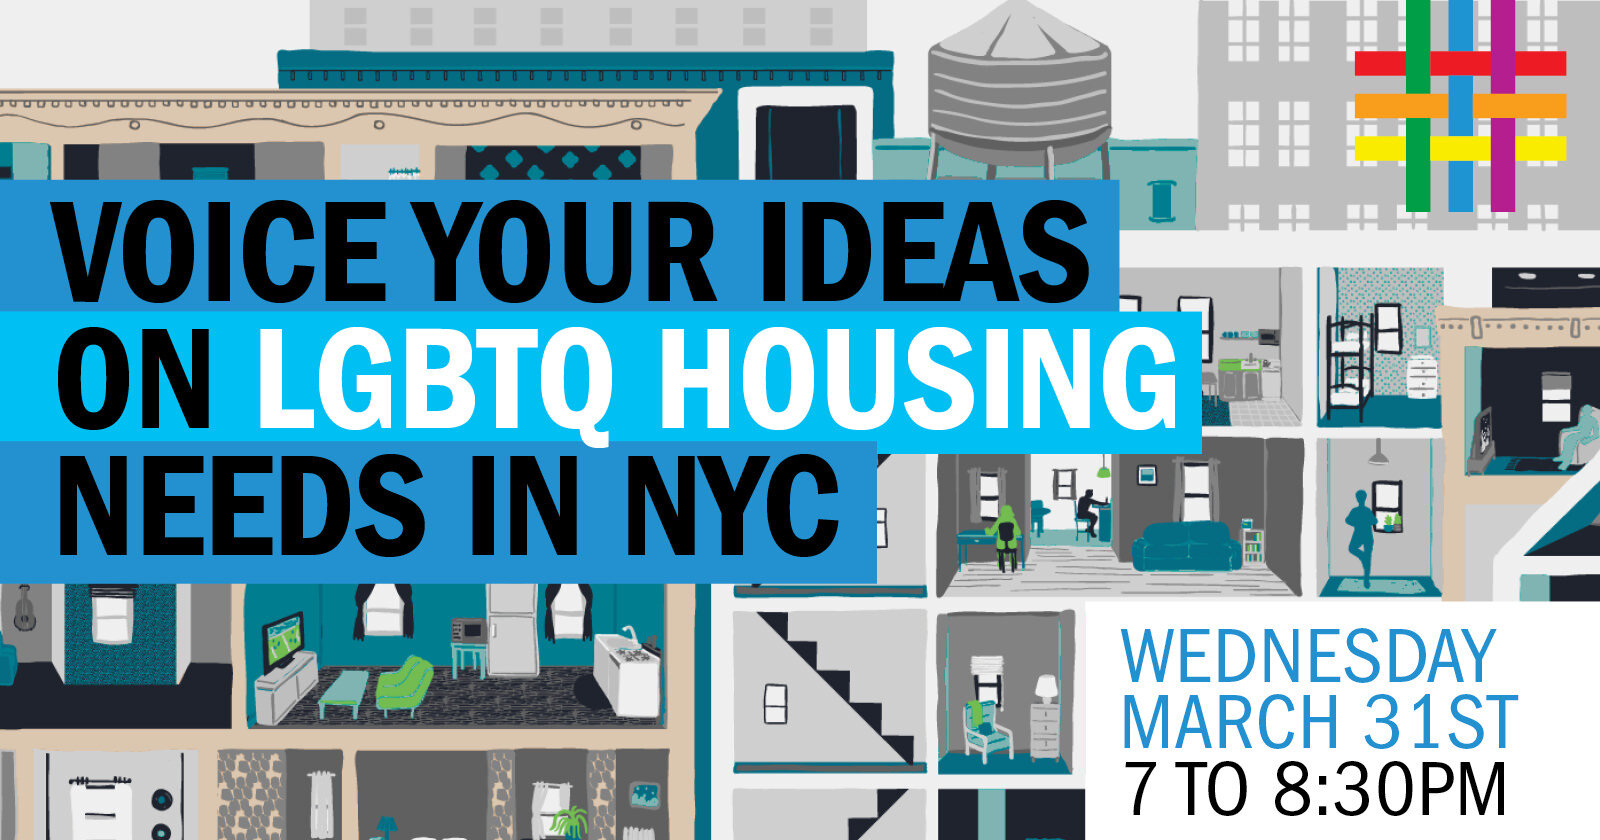 Voice Your Ideas on LGBTQ Housing Needs in NYC